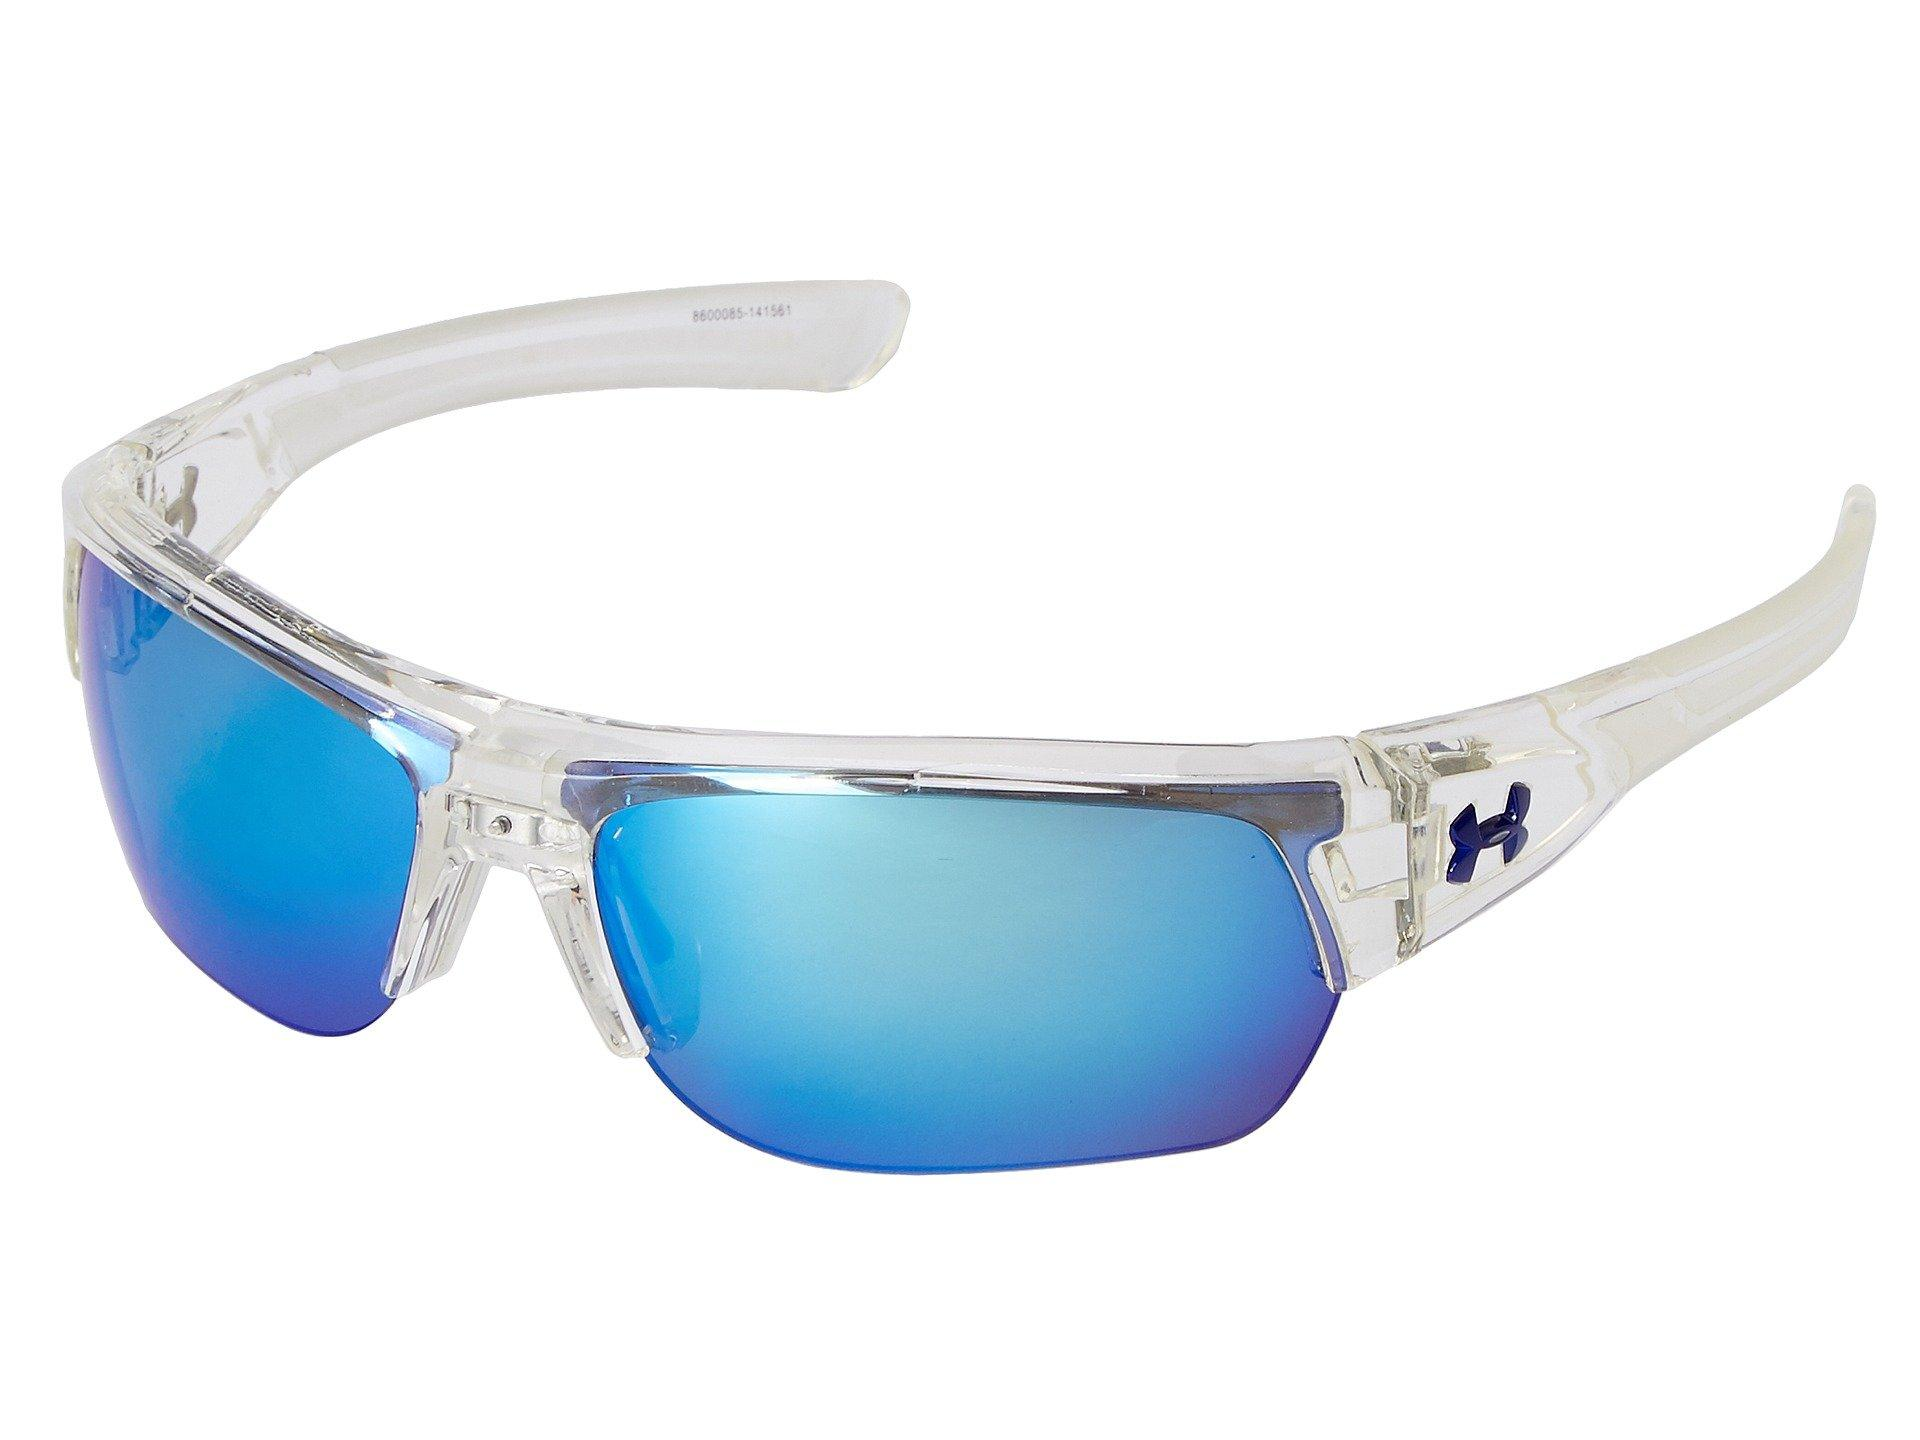 Under Armour Ua Big Shot In Shiny Crystal Clear/clear Frame/gray/blue Multiflection Lens